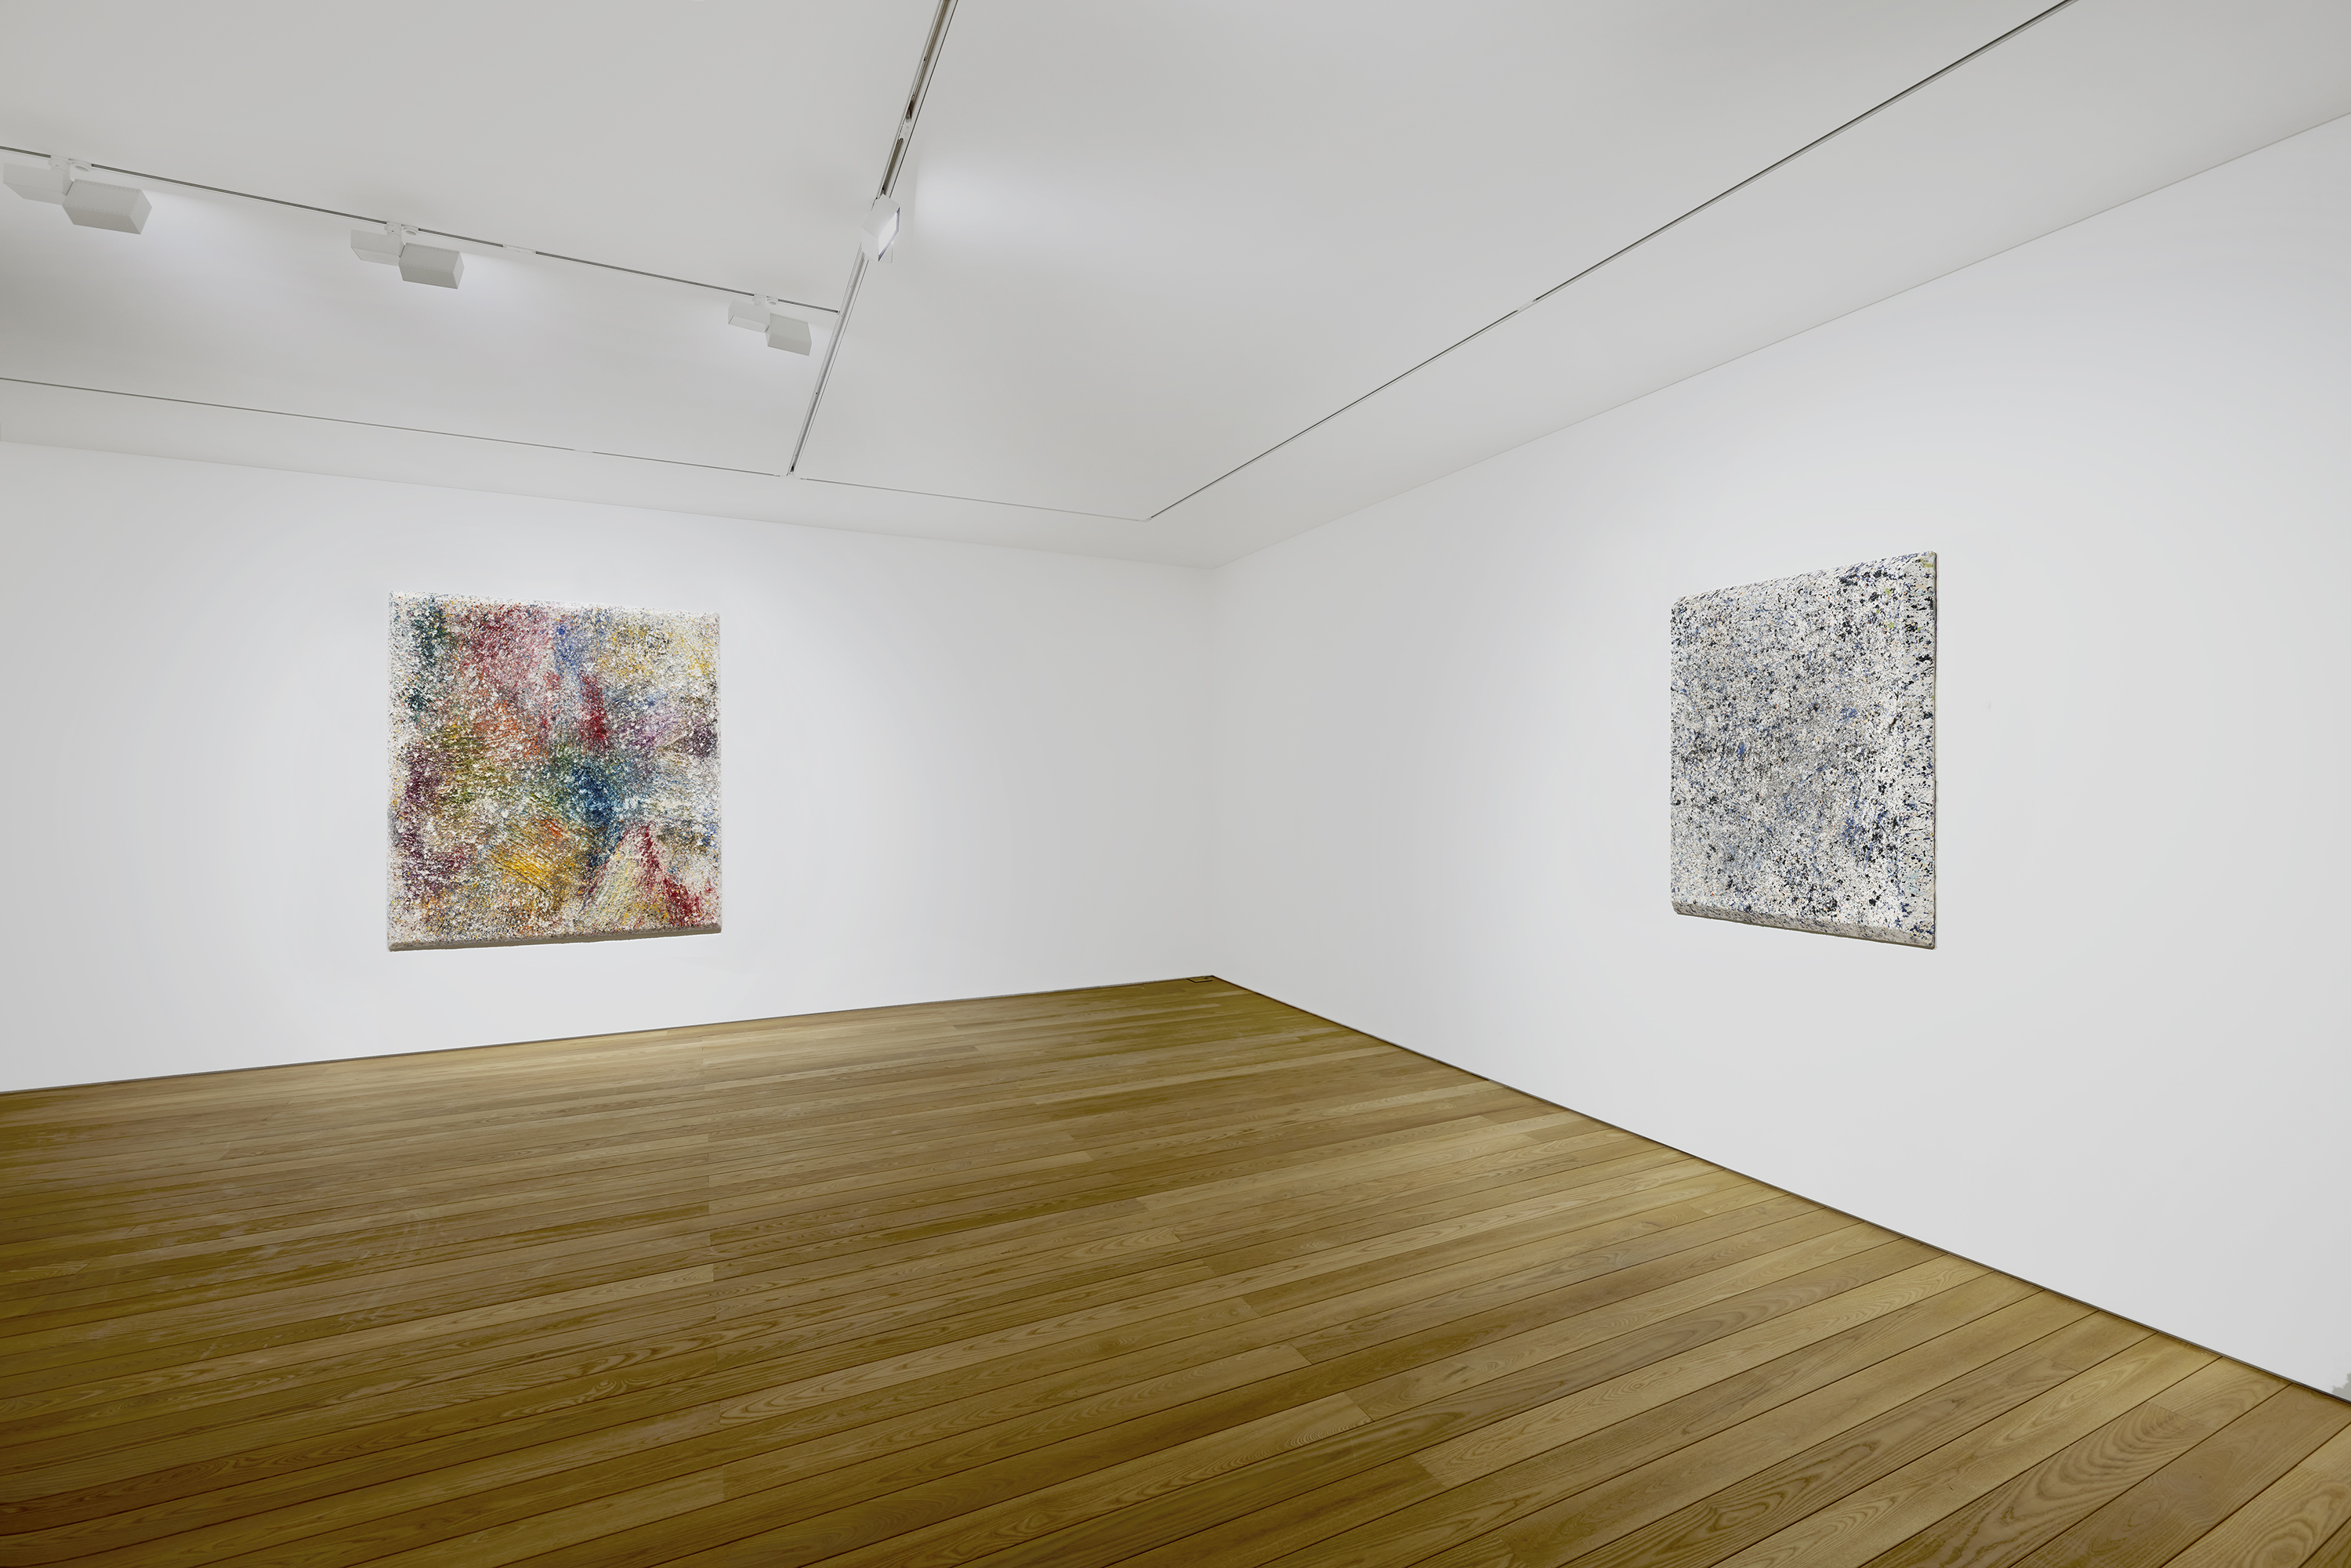 Installation view: Sam Gilliam 2-3/F, 267 Itaewon-ro, Yongsan-gu, Seoul May 27 – July 10, 2021 .Photography courtesy of Pace Gallery.